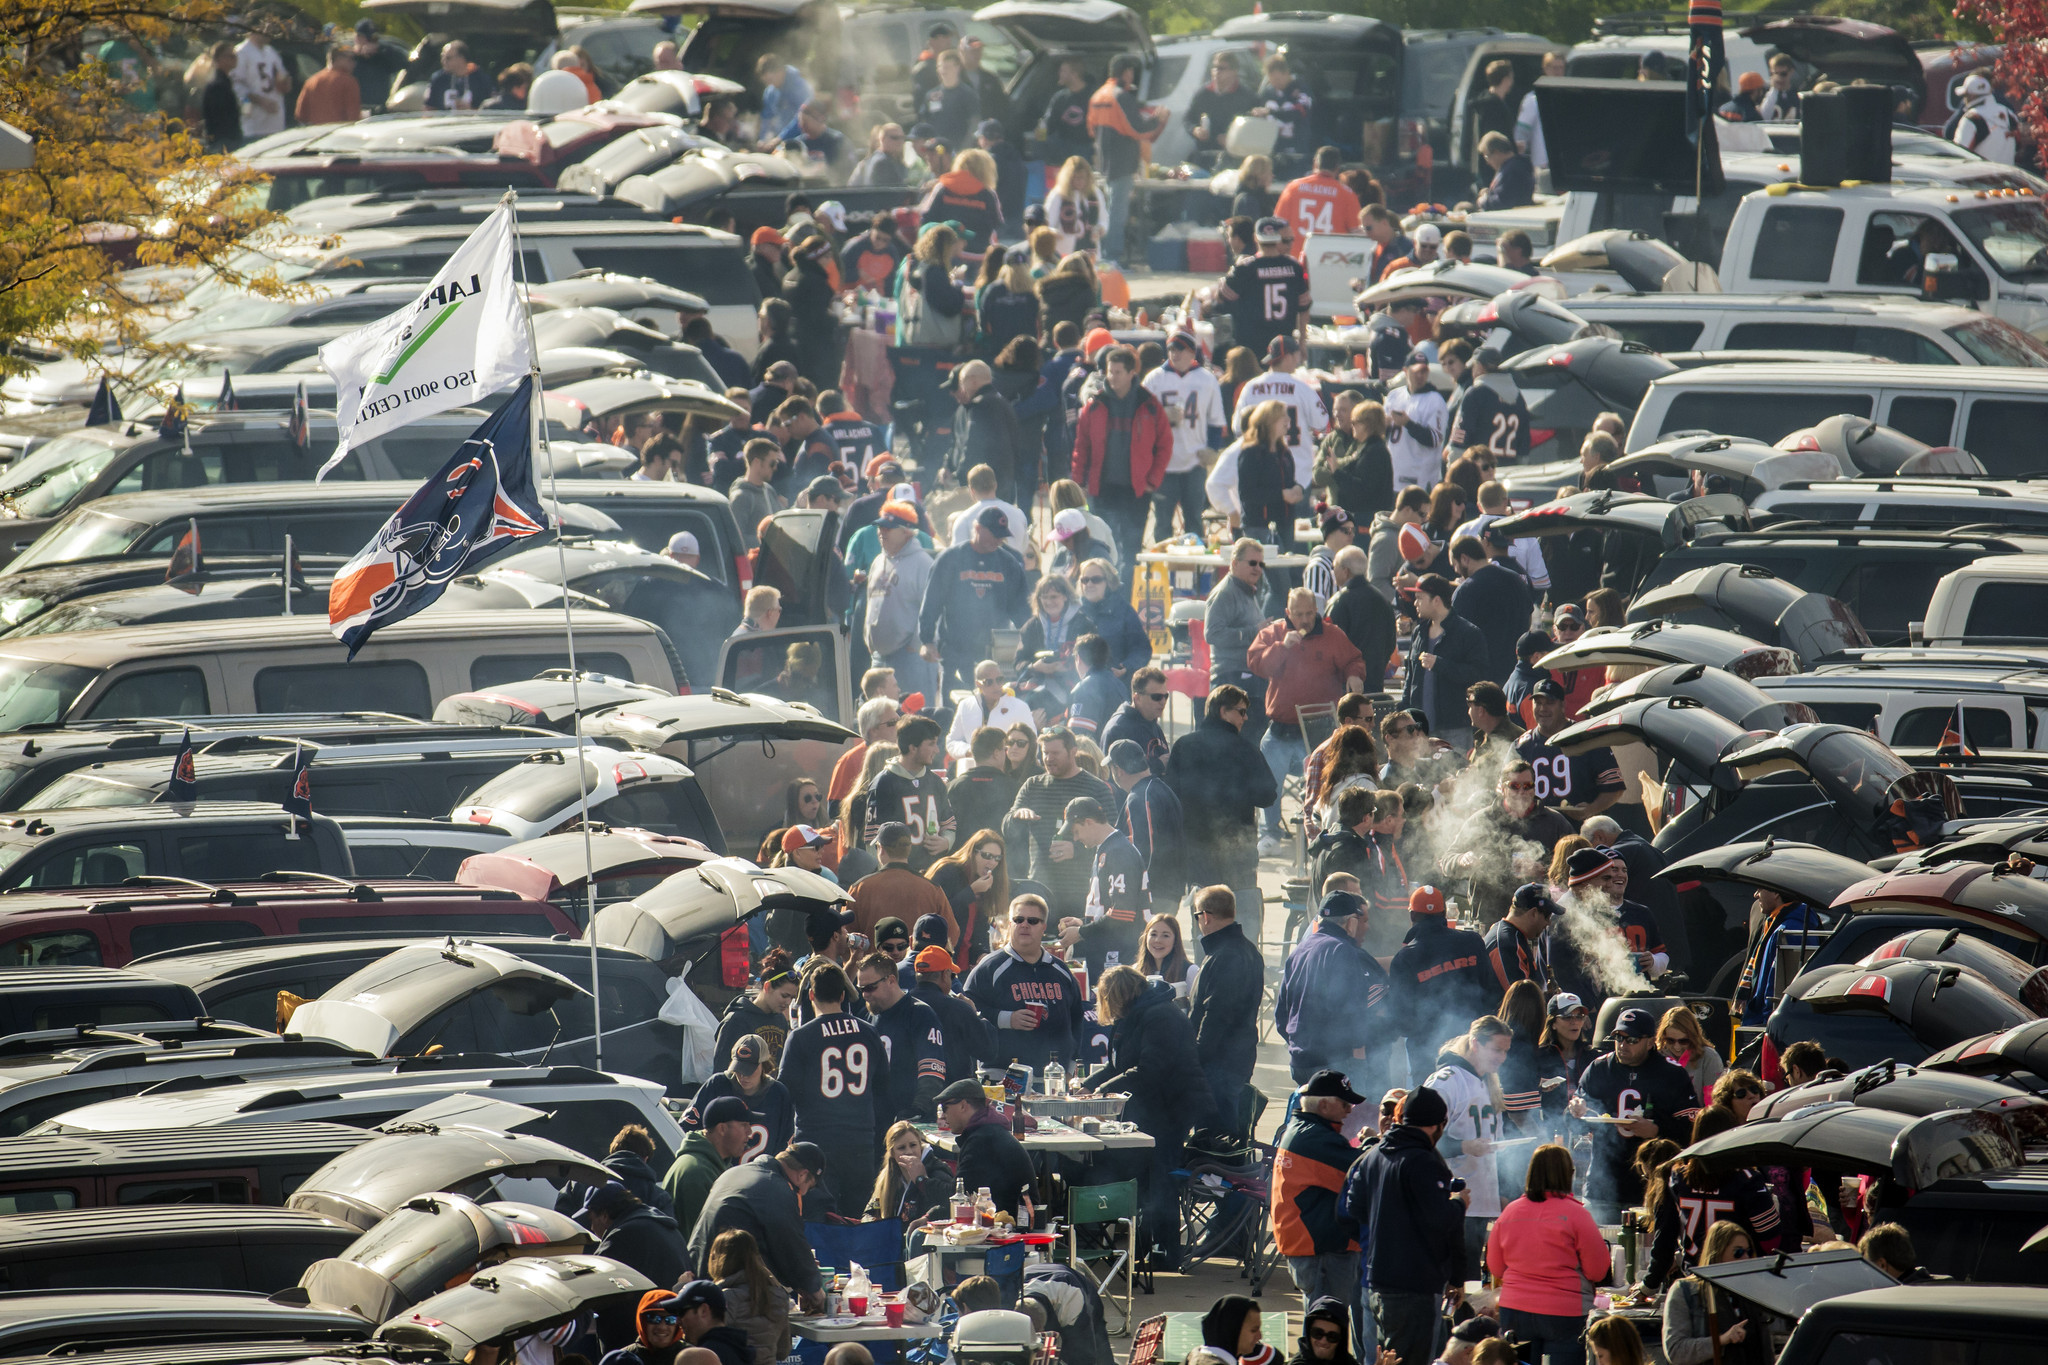 Fans tailgate in the Waldron Deck before the Chicago Bears faced the Miami Dolphins on Sunday, Oct. 19, 2014 at Soldier Field. (Brian Cassella/Chicago Tribune)